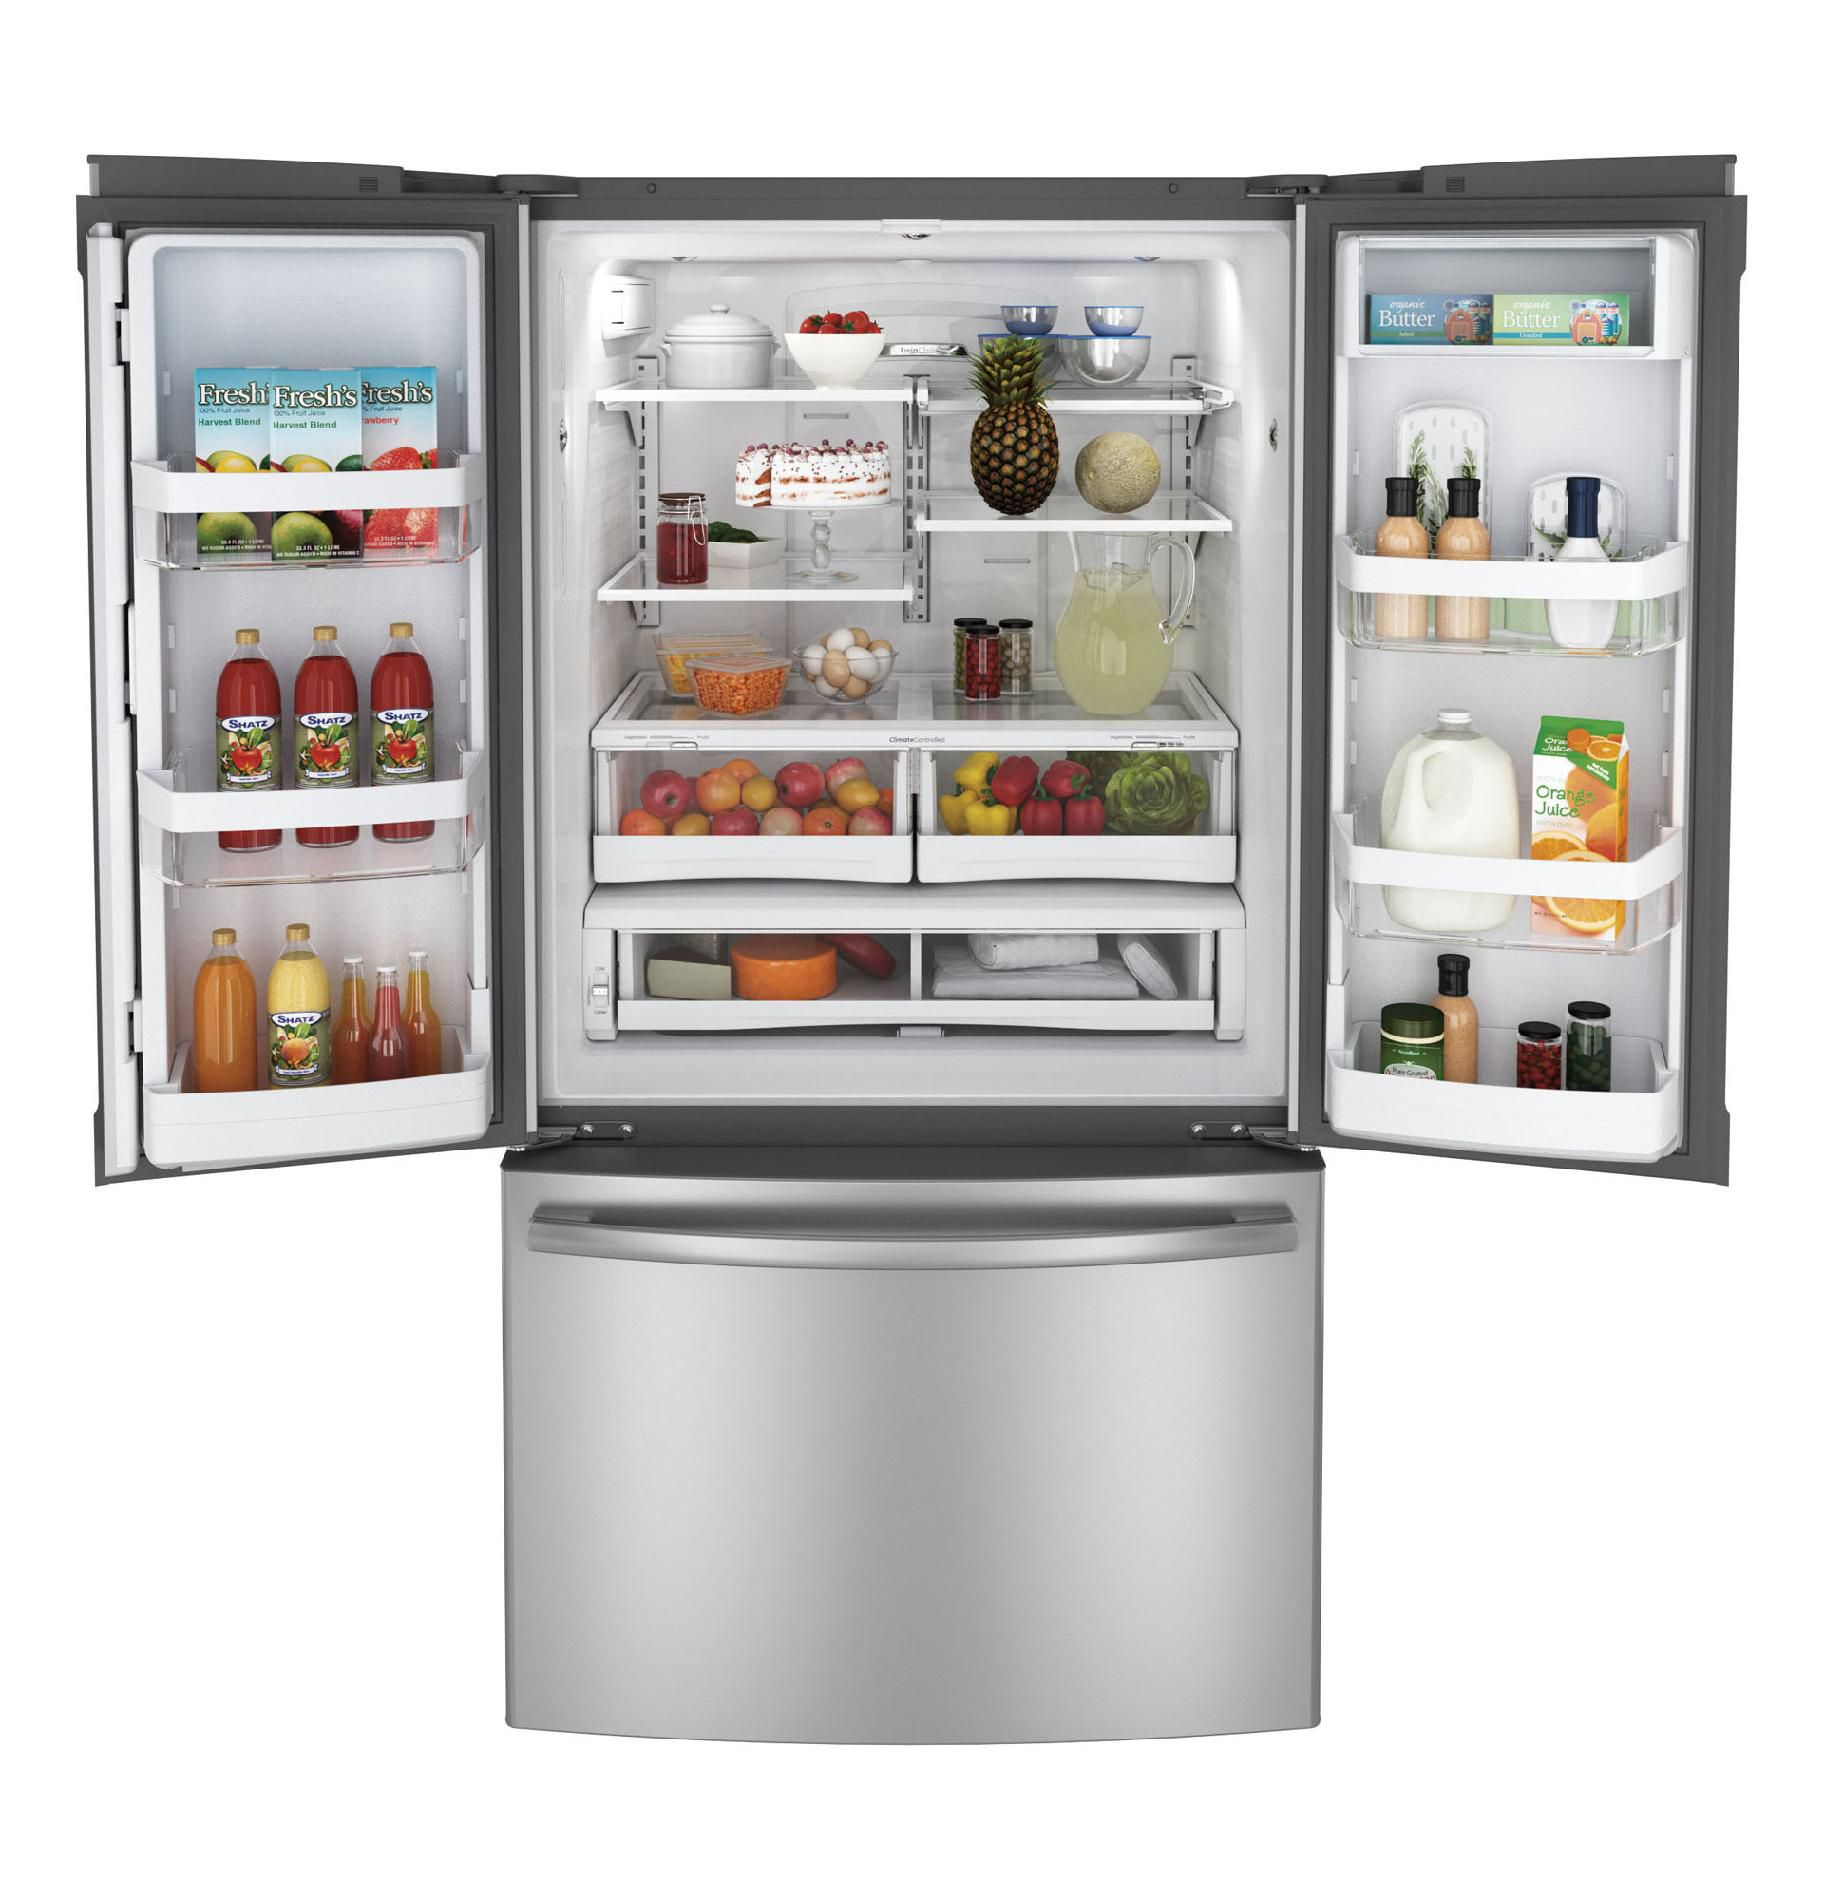 GE 26.3 cu. ft. French Door Refrigerator - Stainless Steel